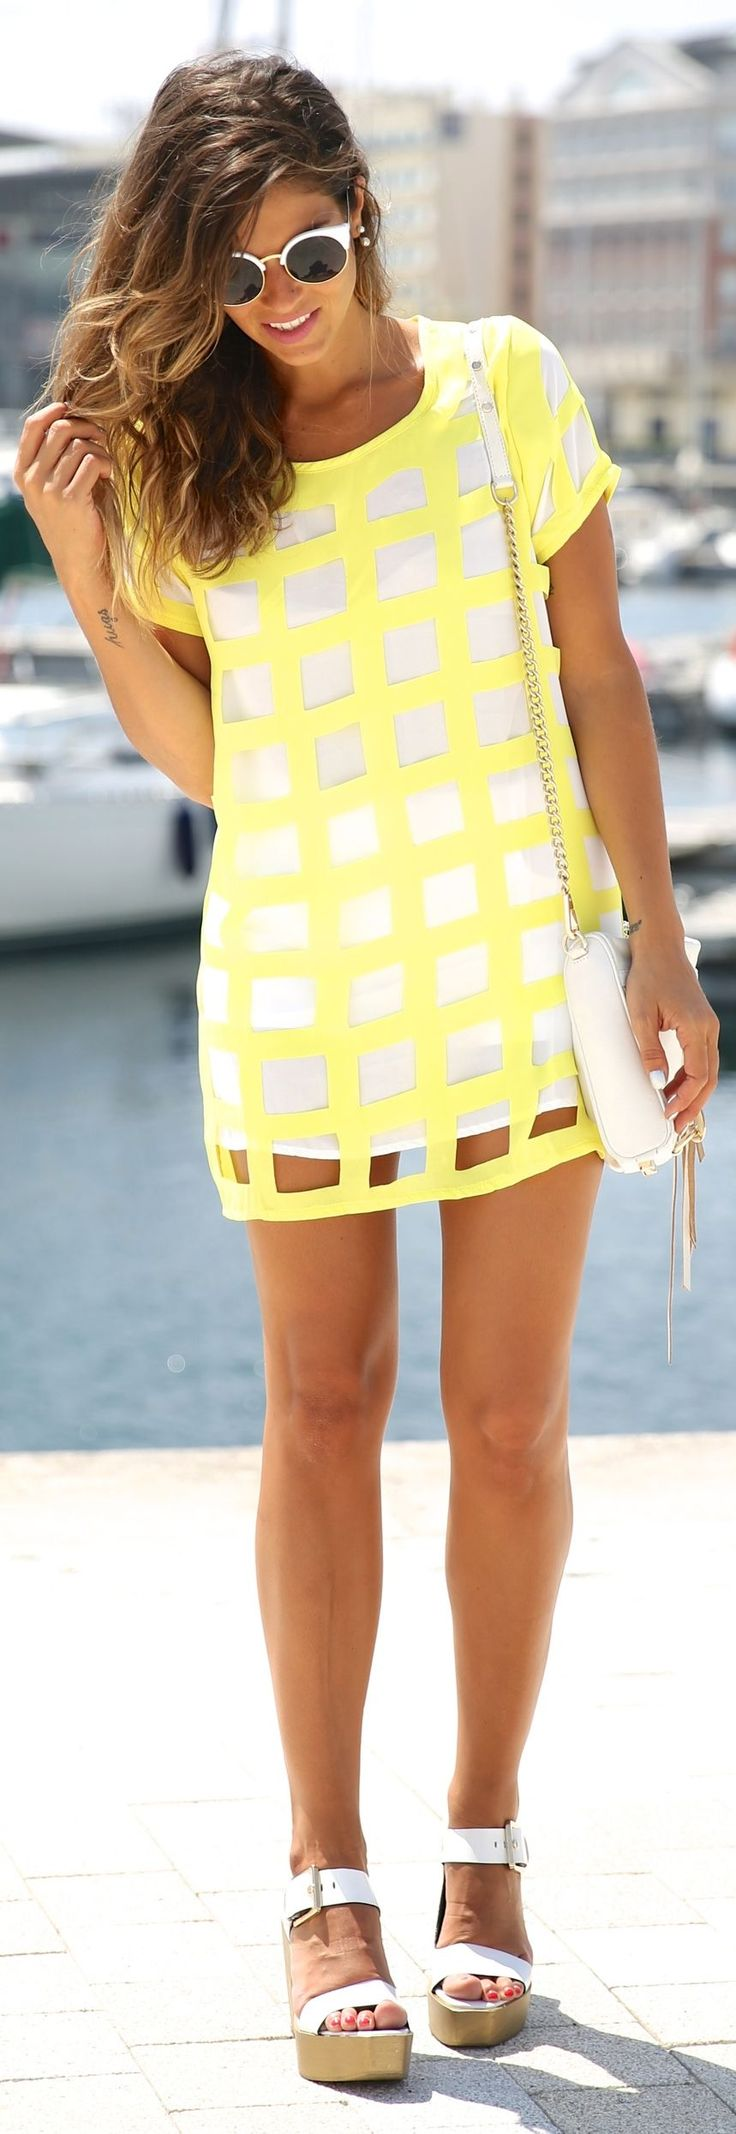 Choies Neon Yellow And White Cutout Windowpane Mini Tee Dress by TrendyTaste. How cute @alir1104 @clarahope!